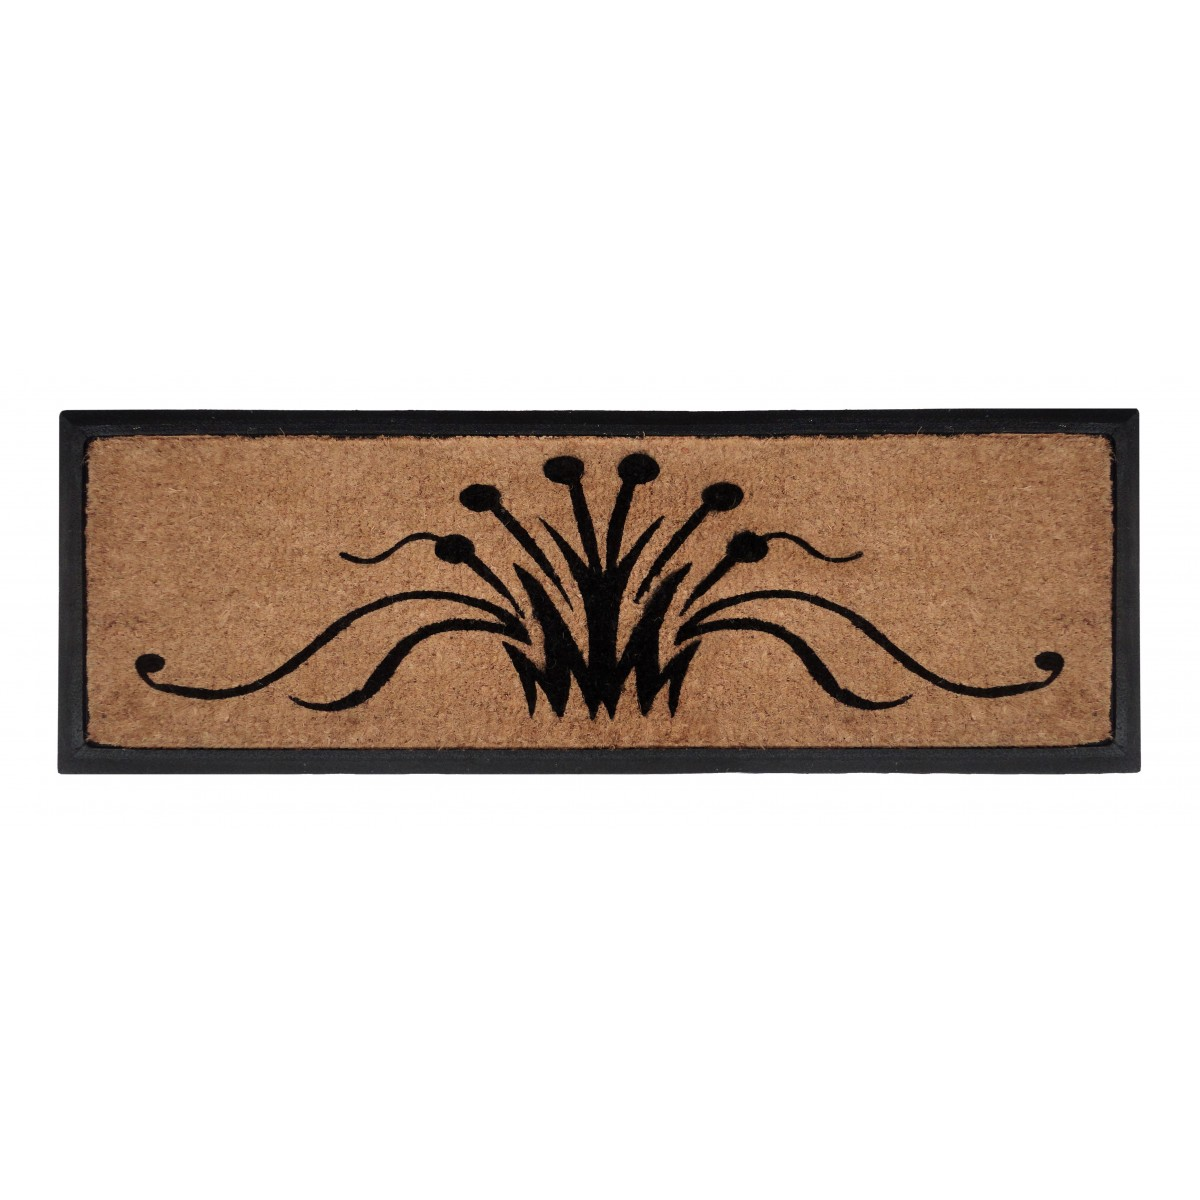 Rubber Bordered Coir Door Mat - Swirls